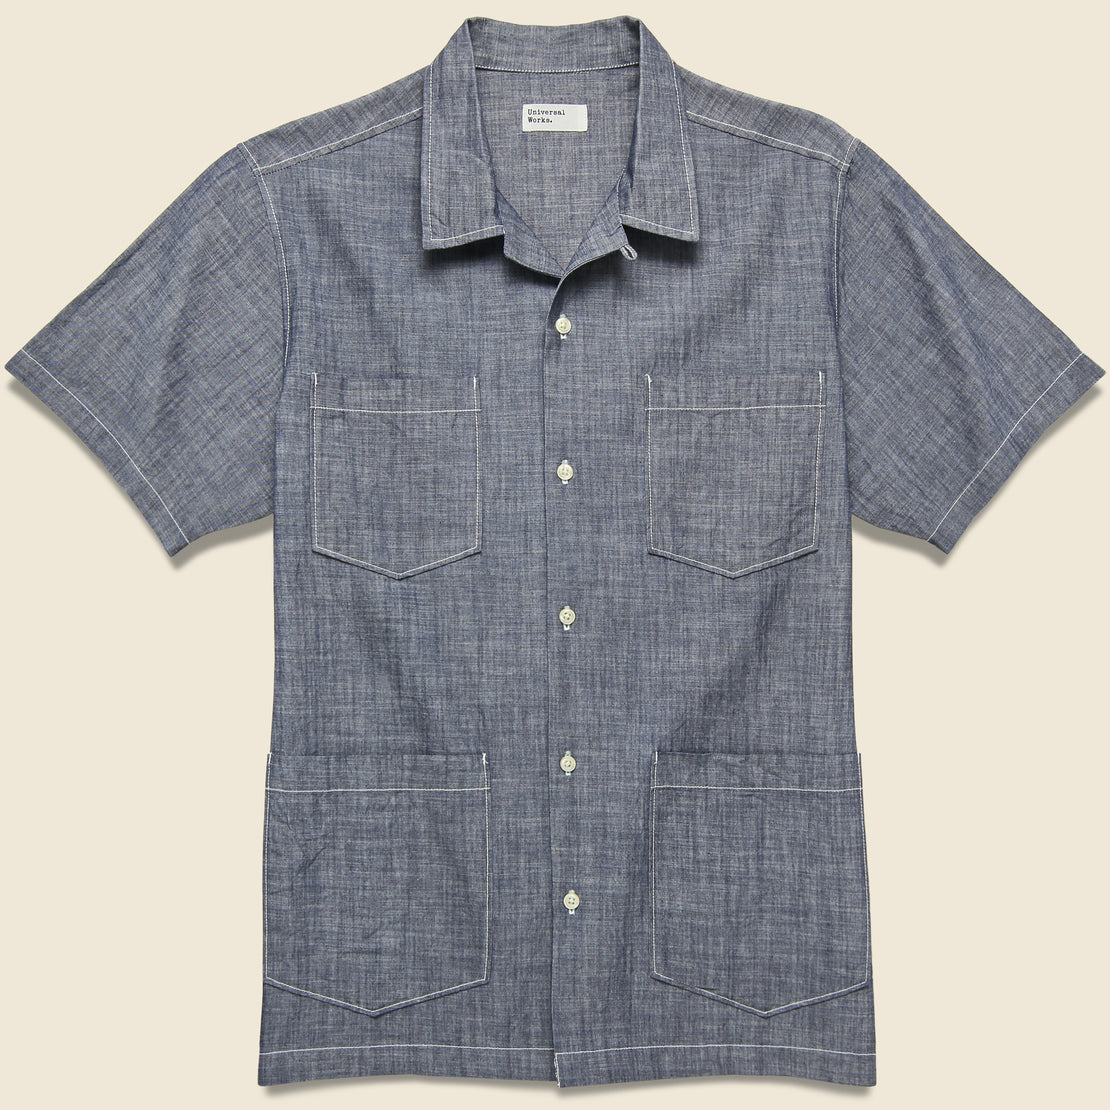 Universal Works The Summer Overshirt - Indigo Chambray